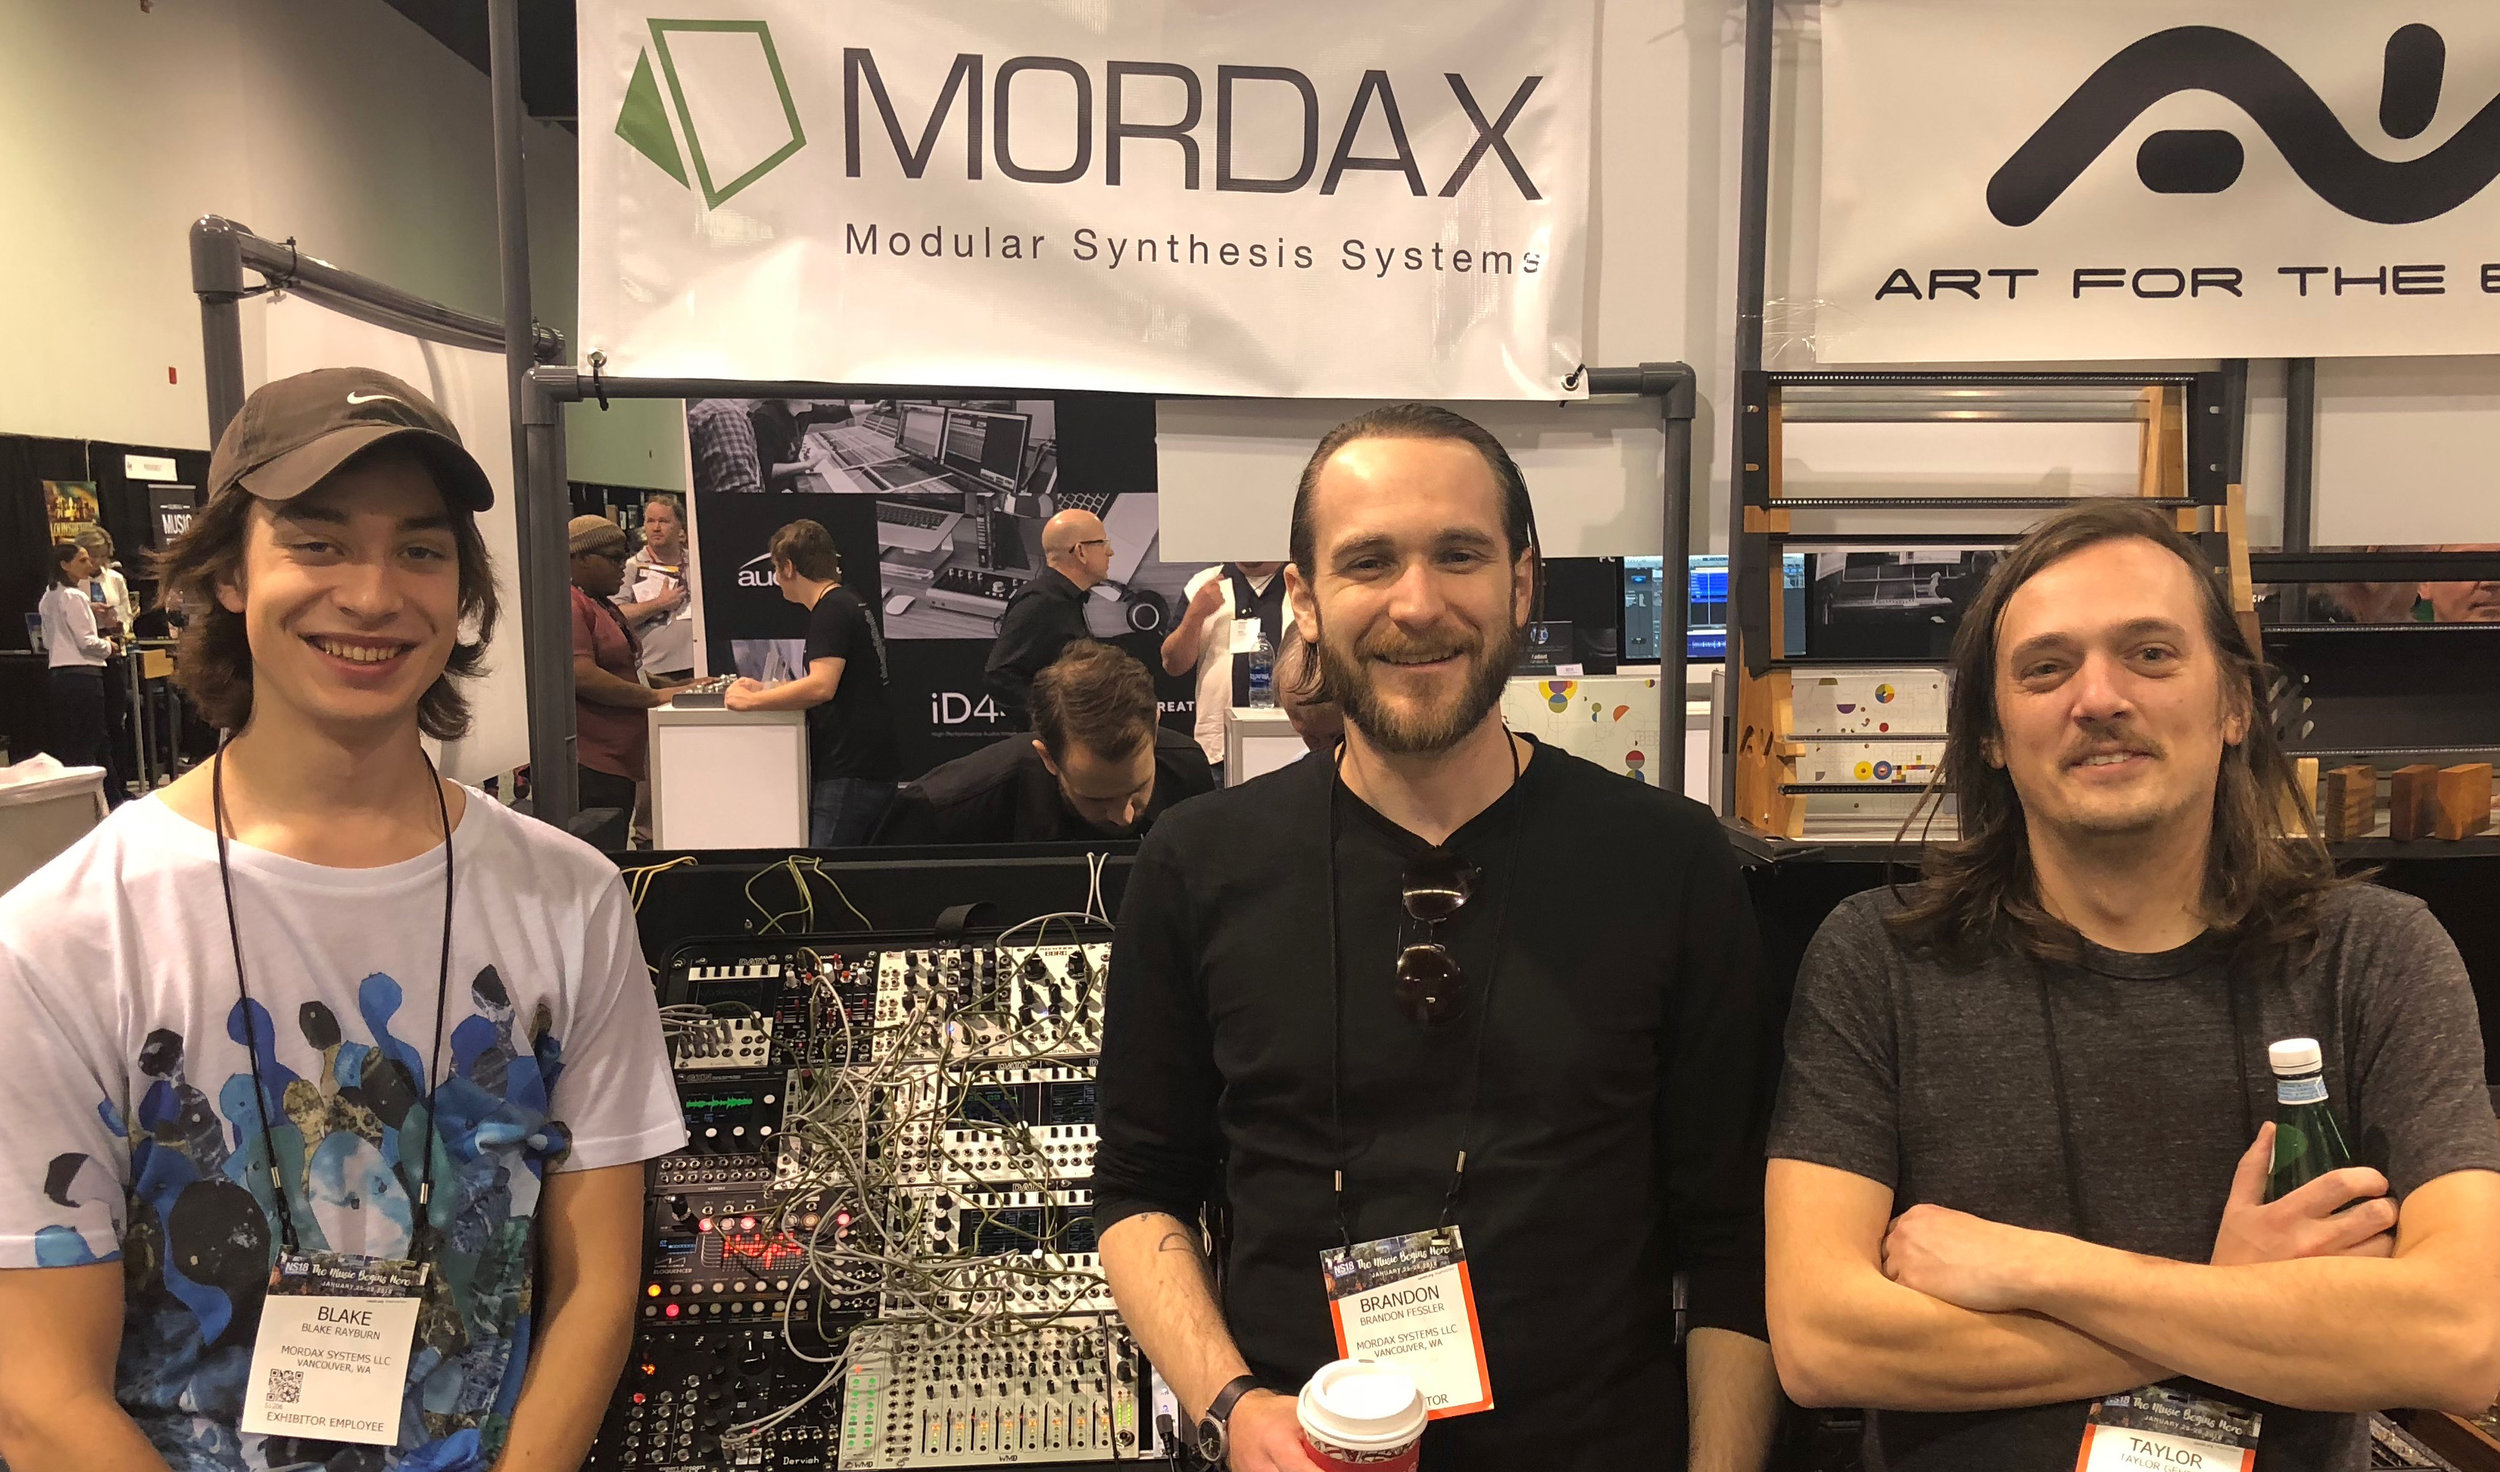 The Mordax booth babes: Blake, Brandon, and Taylor